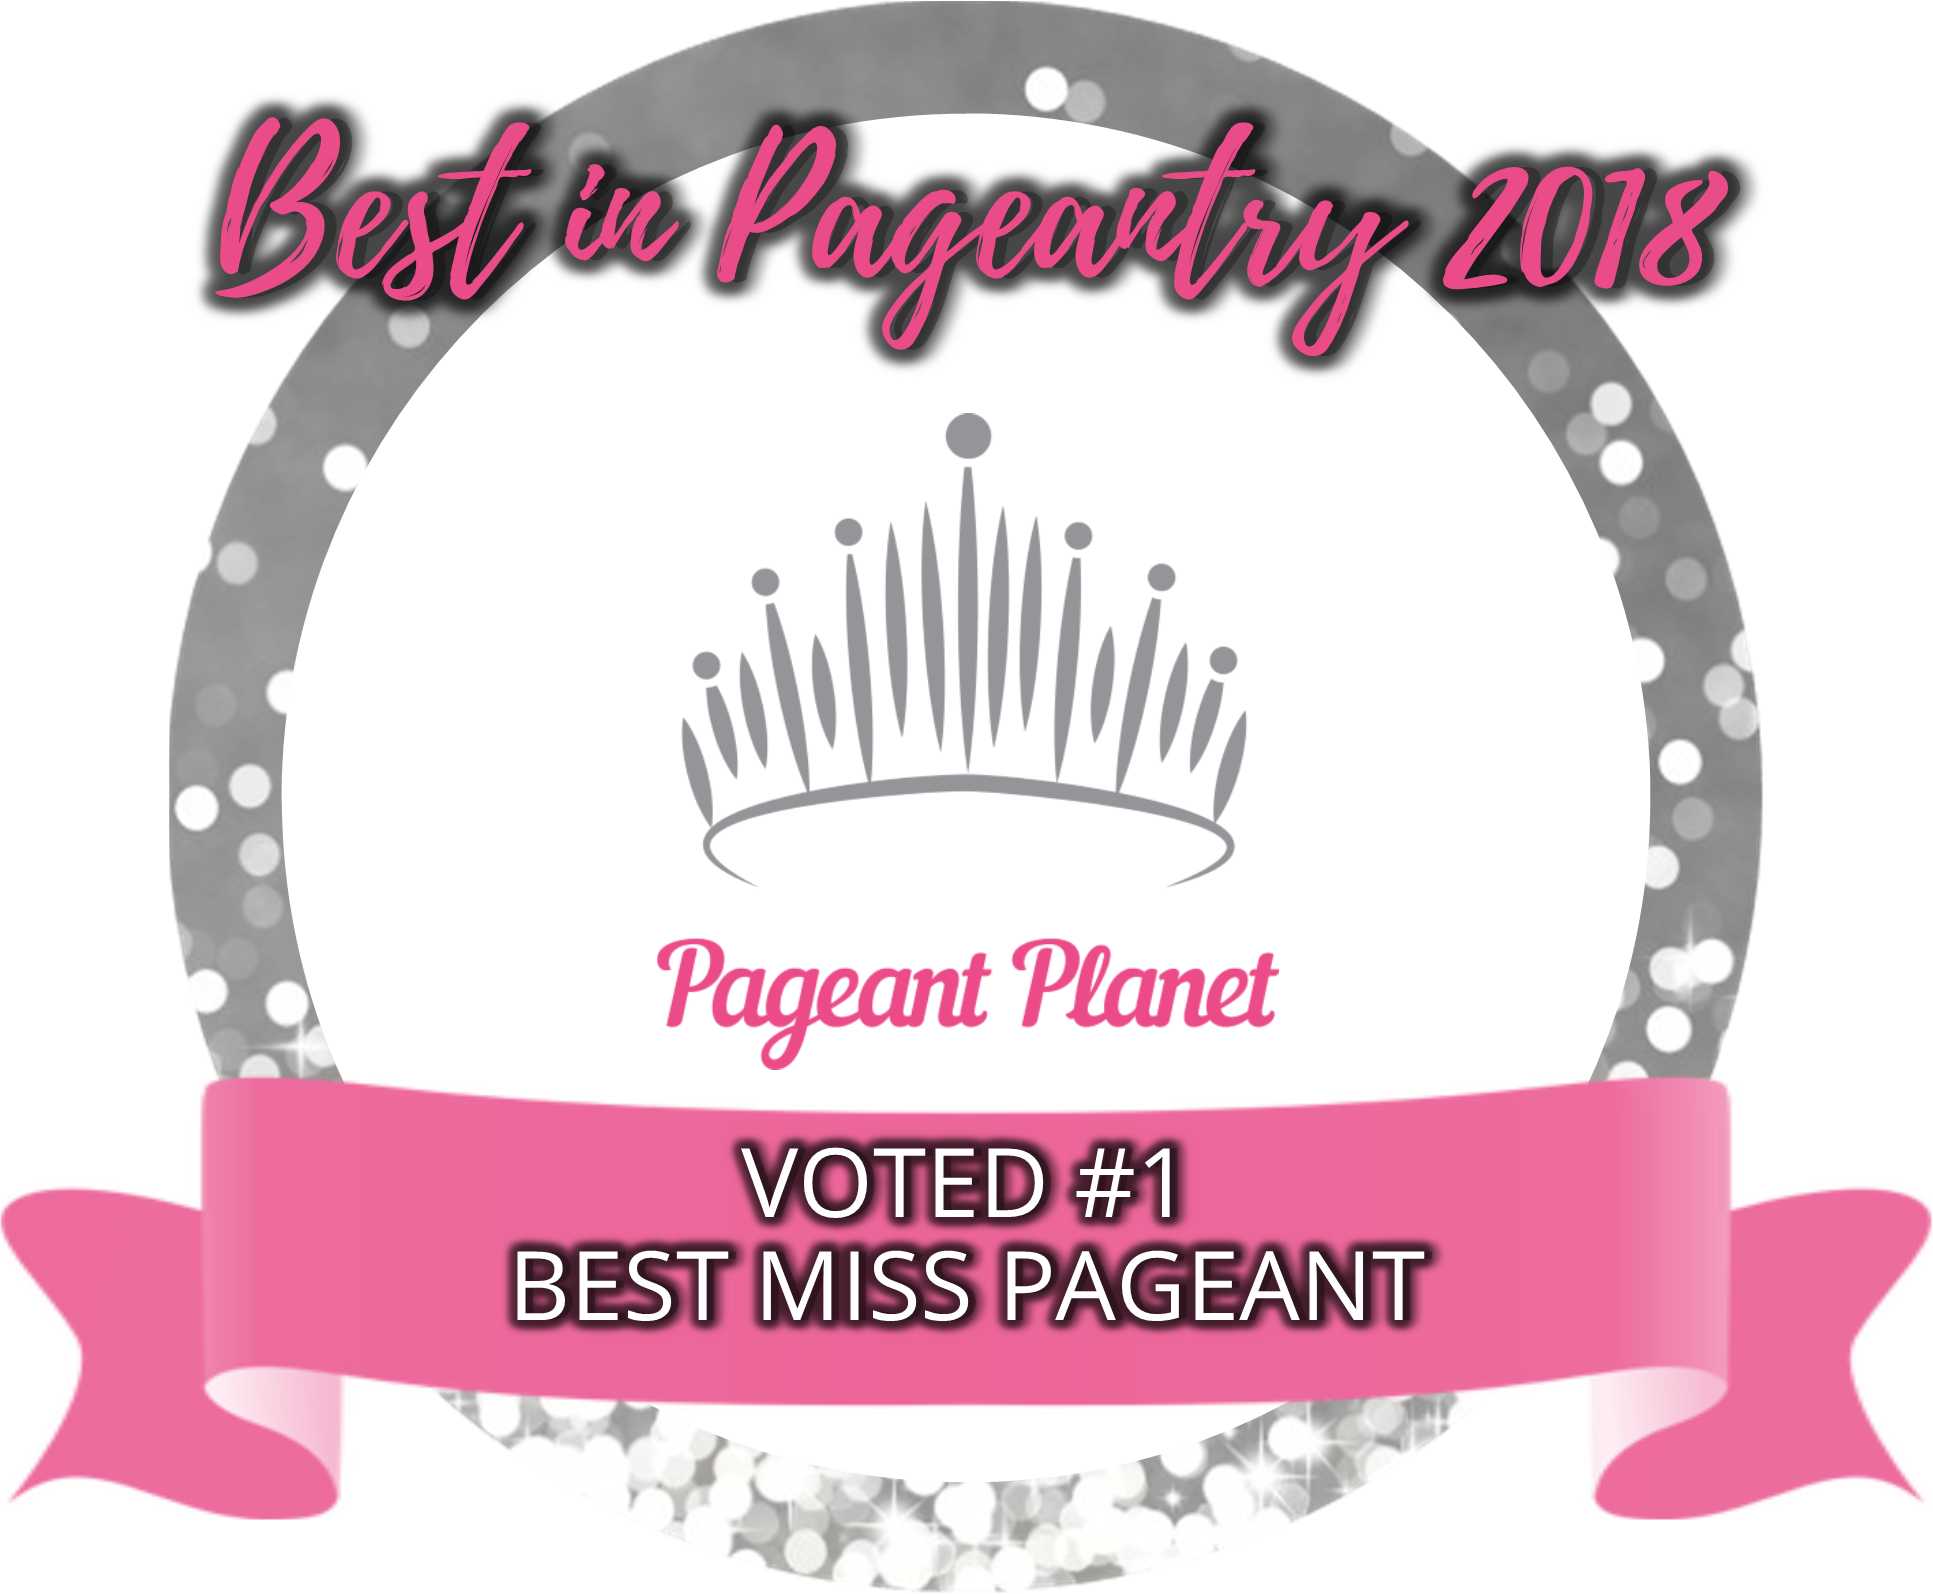 #1 Best Miss Pageant of 2018